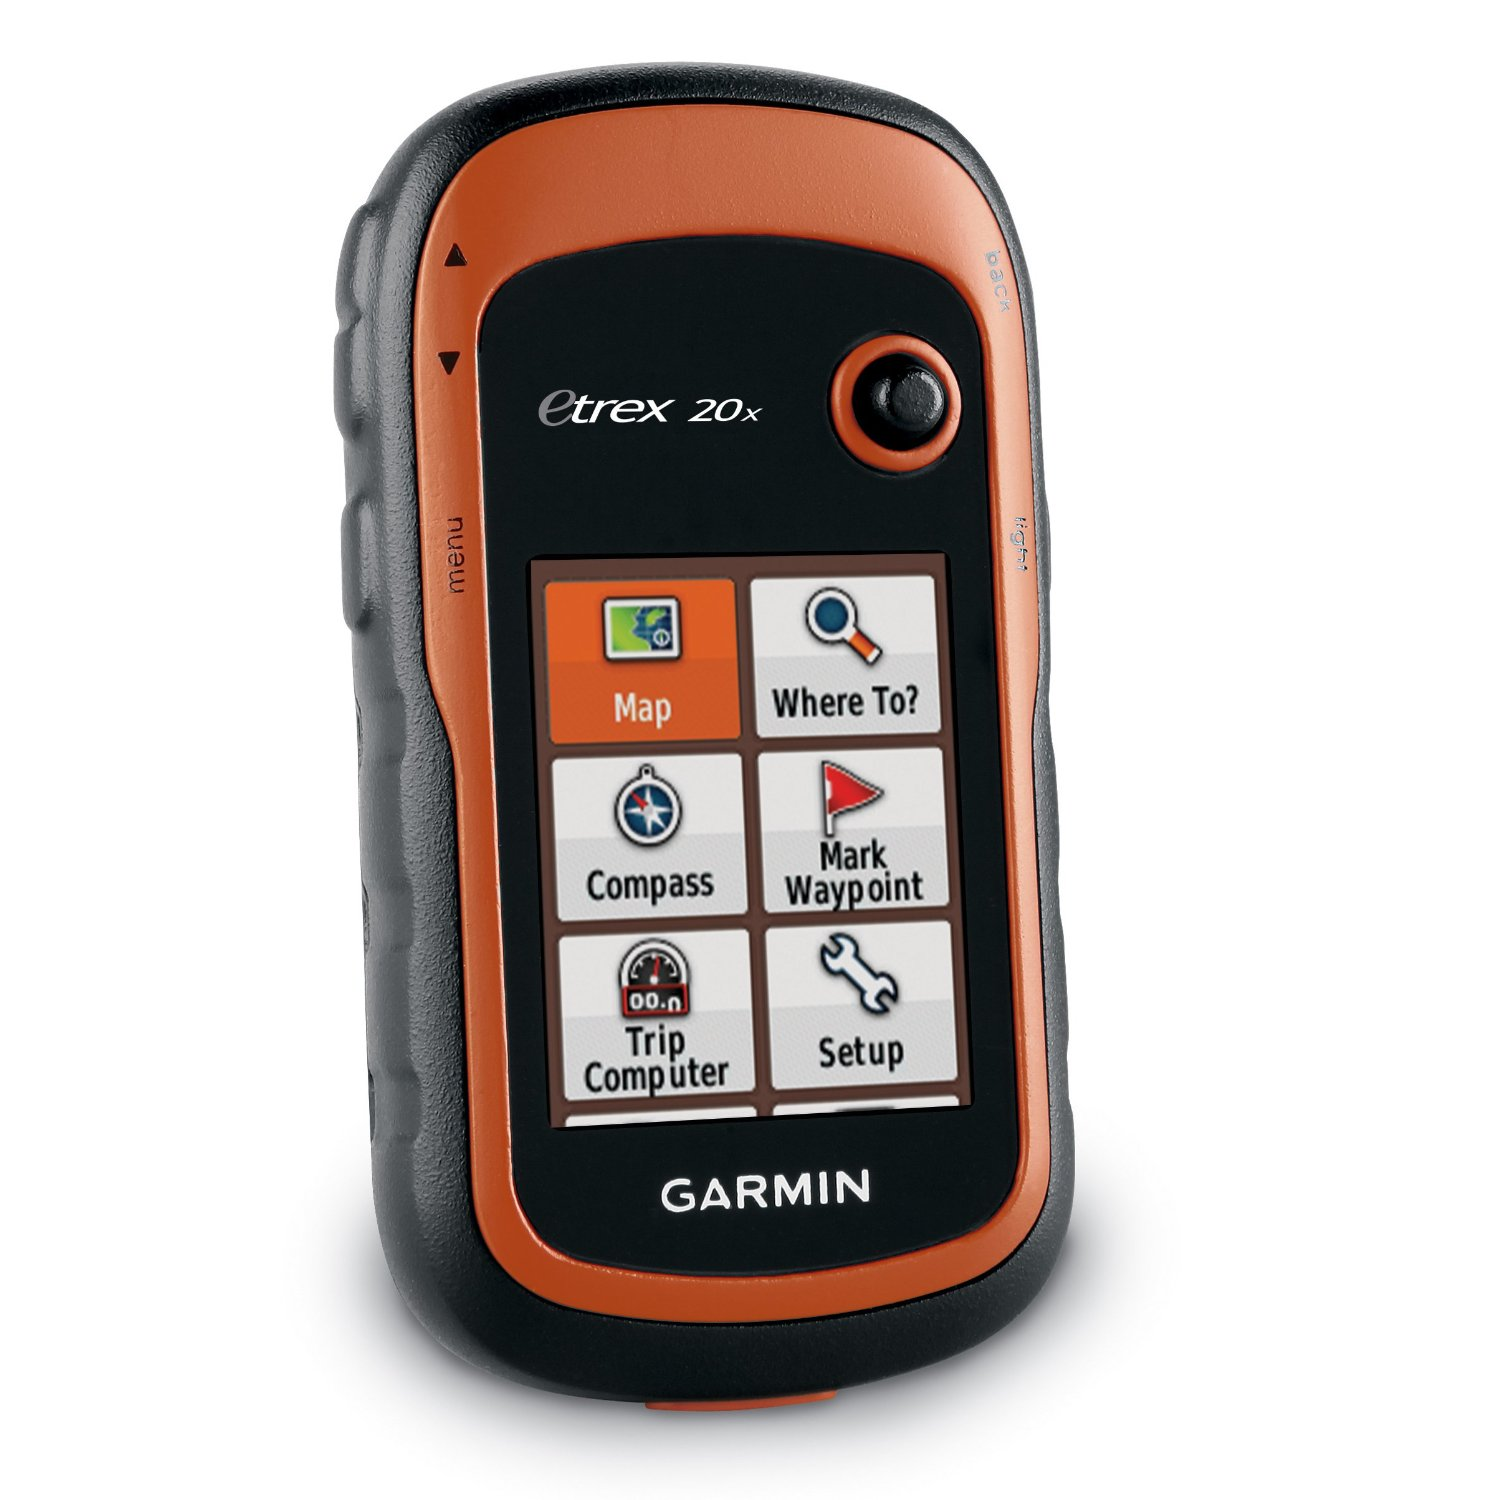 Garmin eTrex 20x Outdoor Handheld GPS Unit